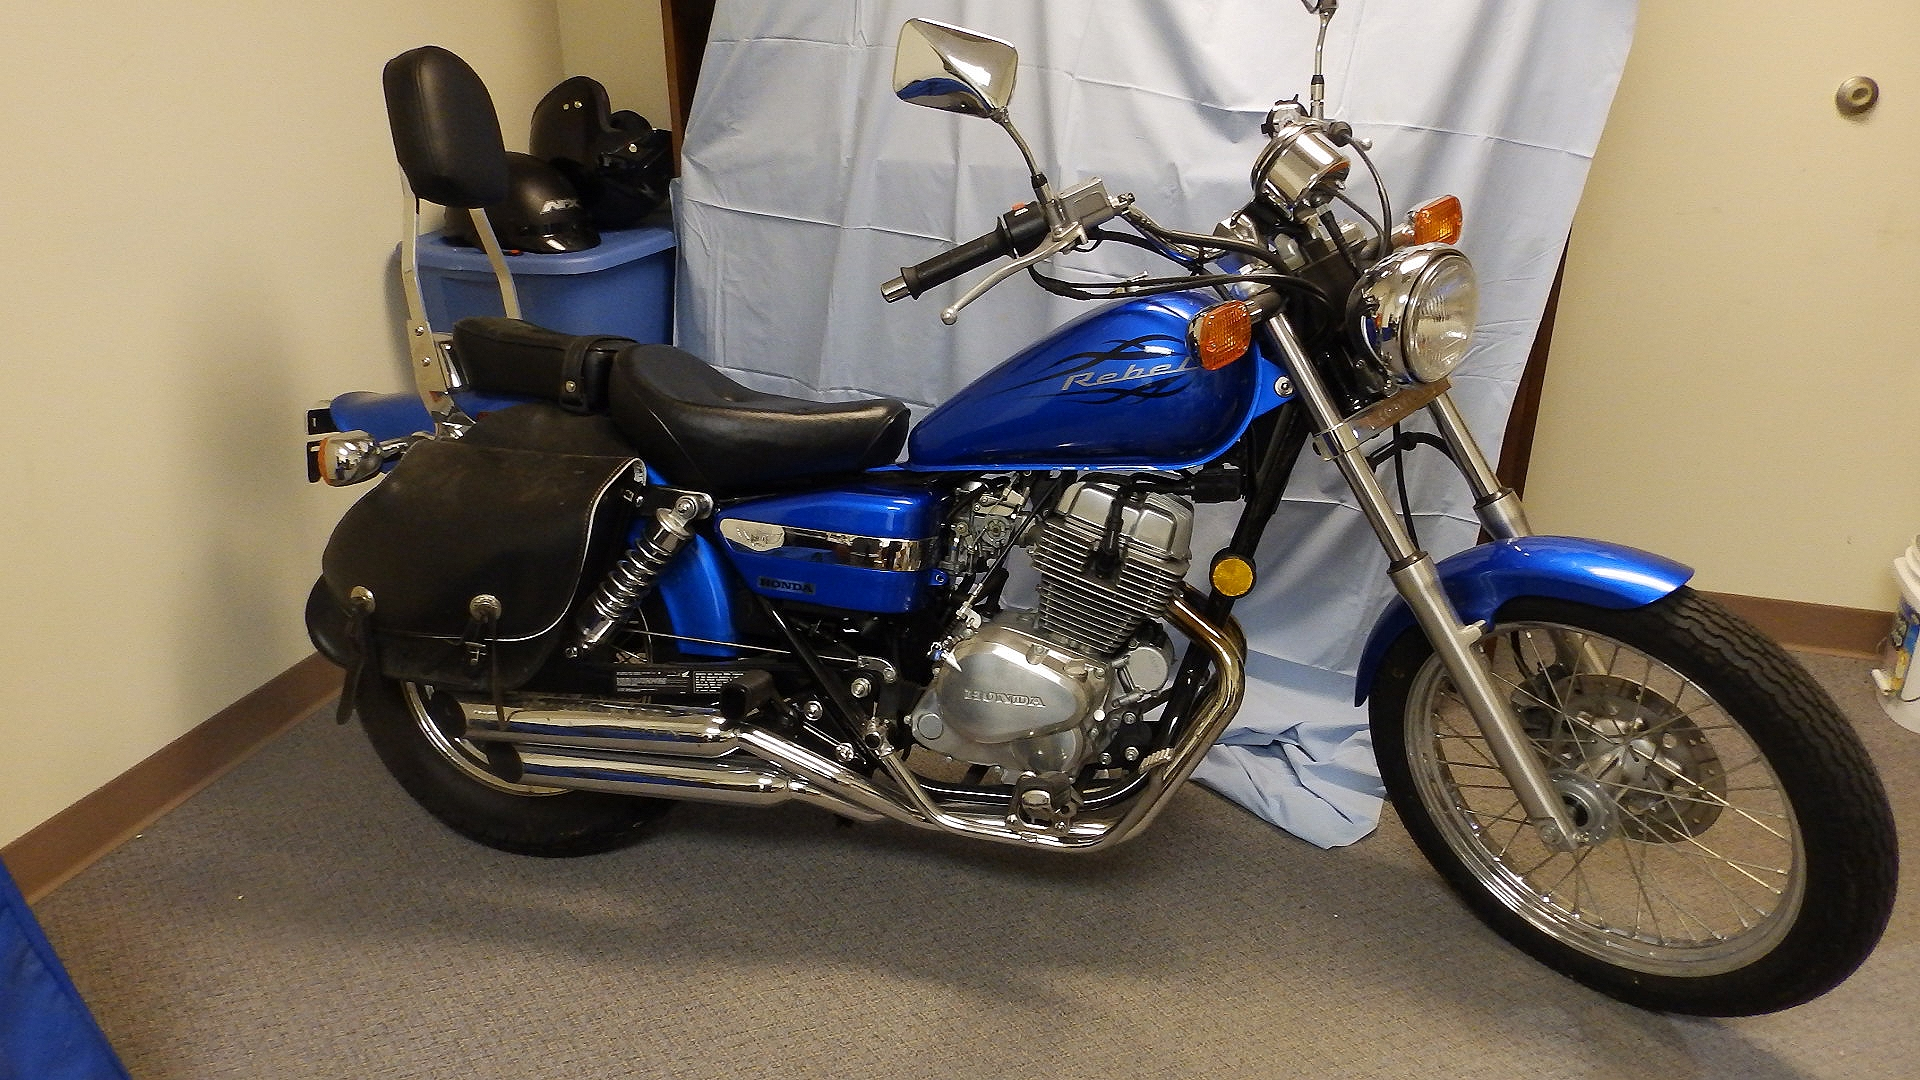 Attractive 2009 Honda Rebel CMX250C Raffle! Rikkiu0027s Refuge Is Raffling A Motorcycle!  OLYMPUS DIGITAL CAMERA